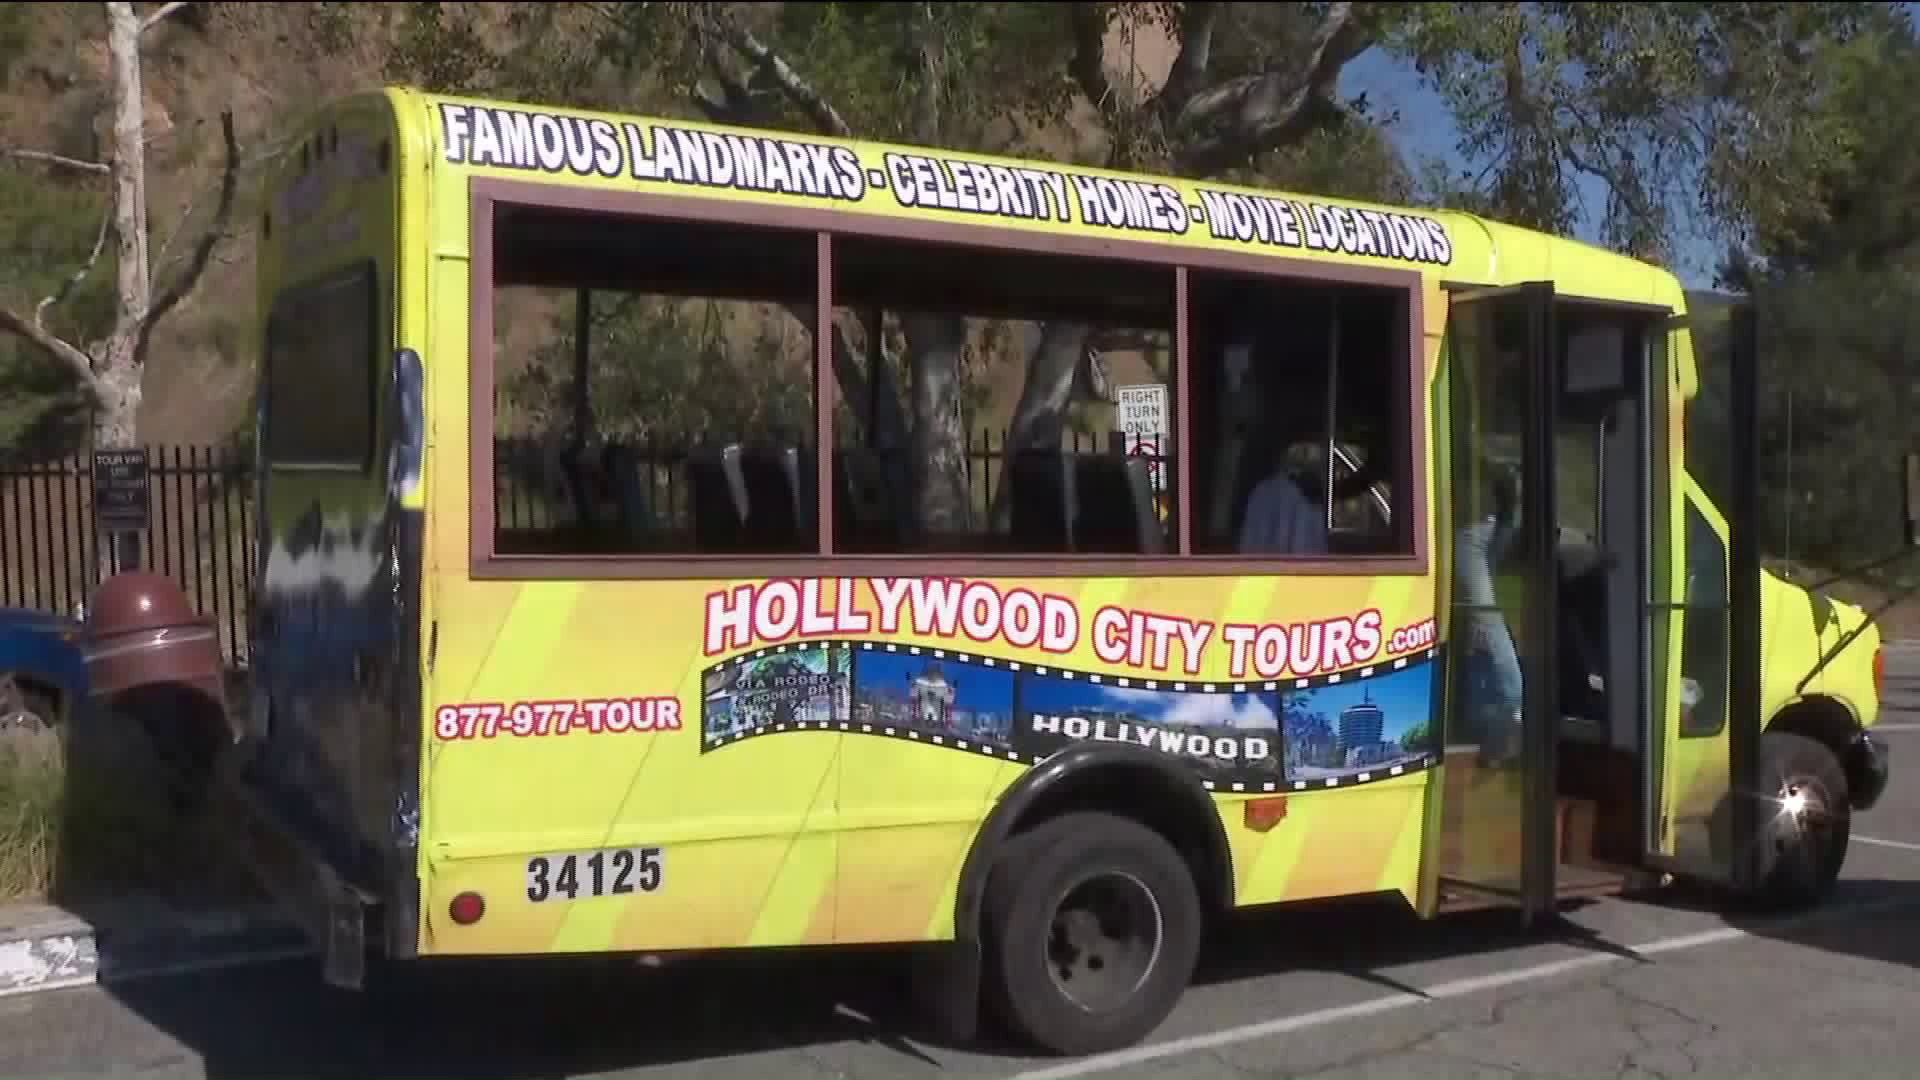 A tour bus is seen in a file photo. (KTLA)